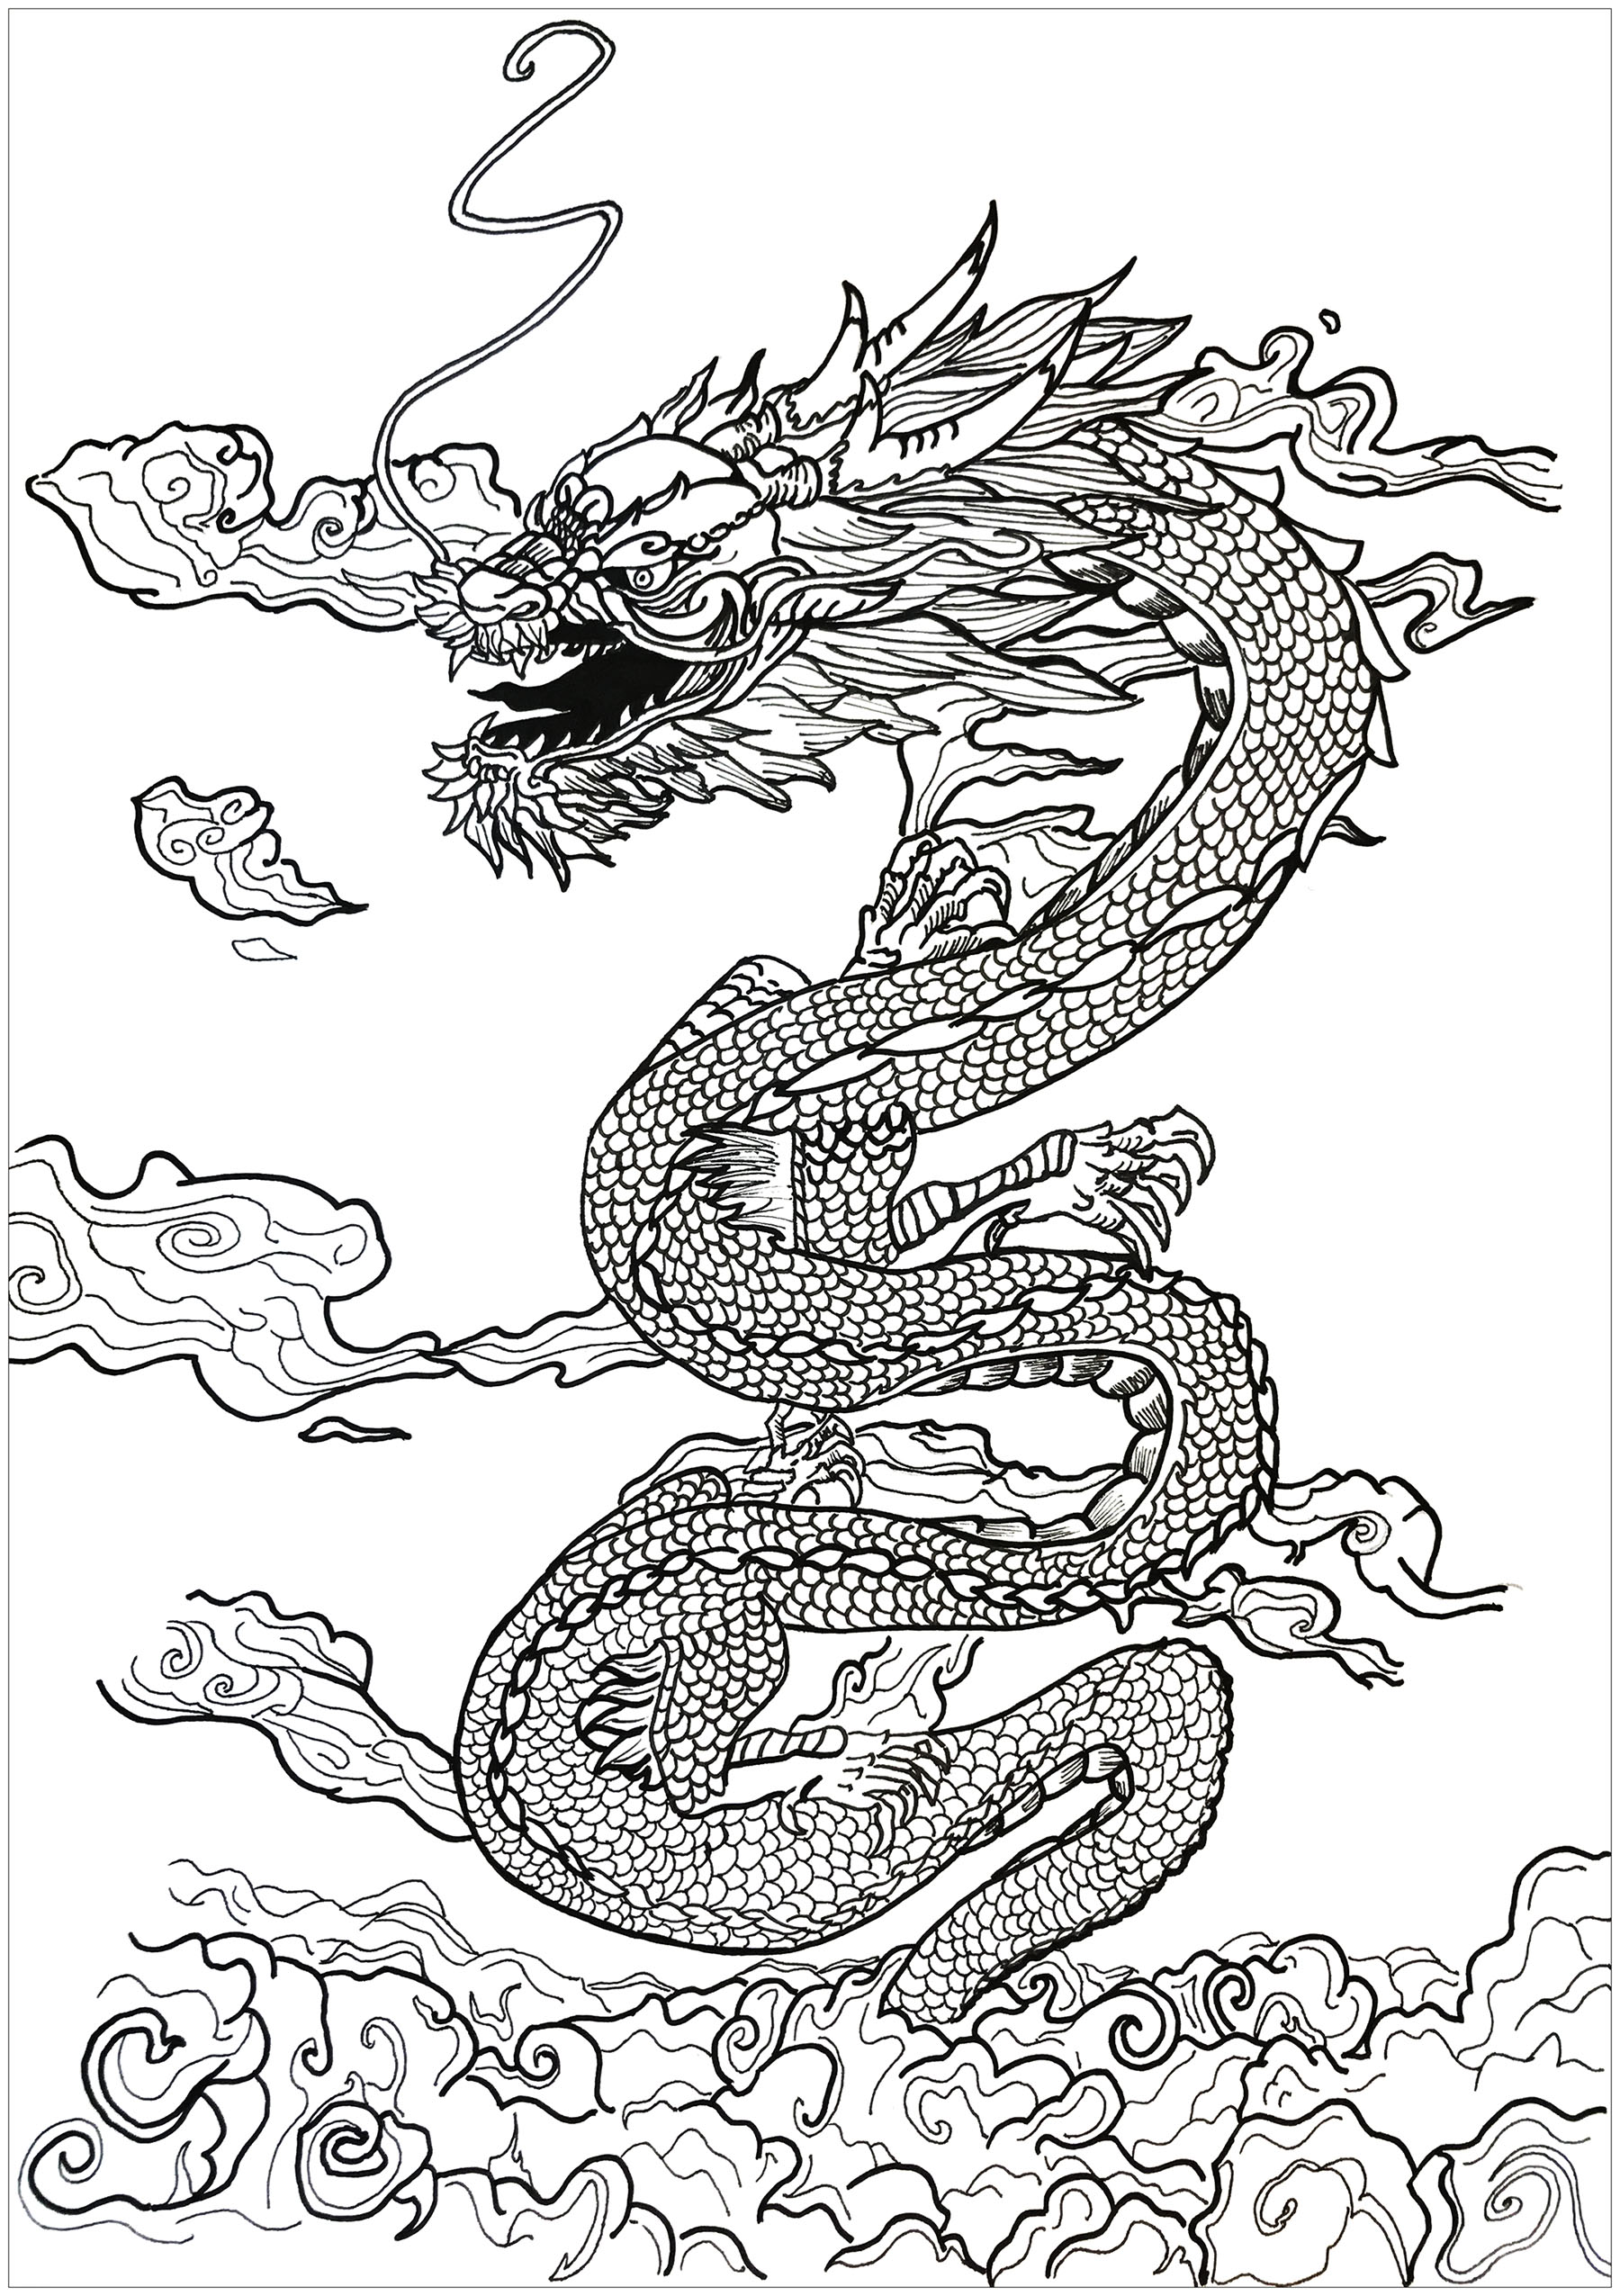 an incredible dragon slipping through the clouds by alexis from the gallery myths - Dragon Coloring Pages For Adults